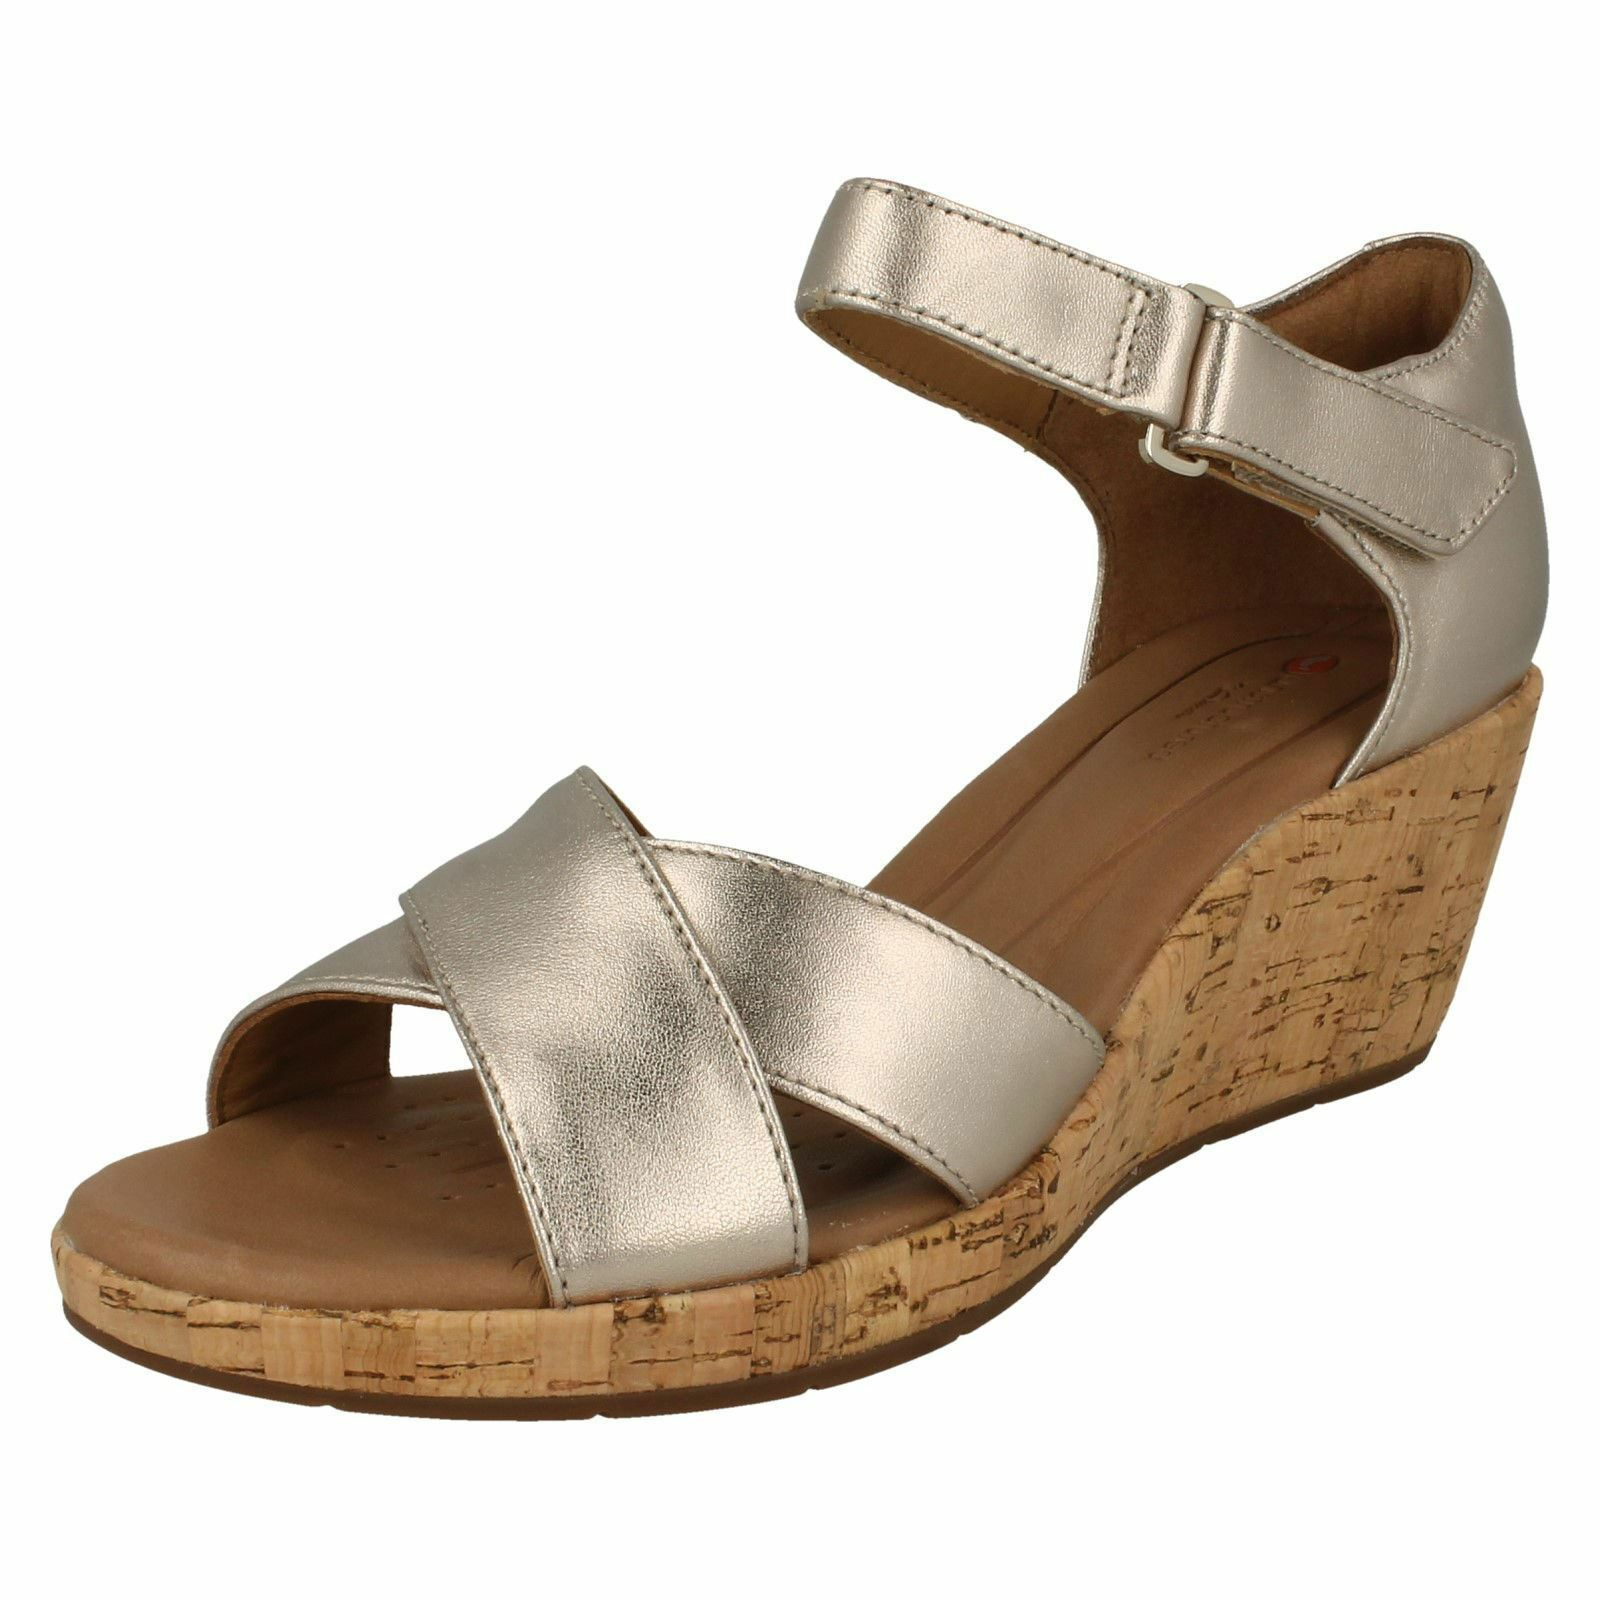 Ladies Clarks Wedge Heeled Sandals - Un Plaza Cross